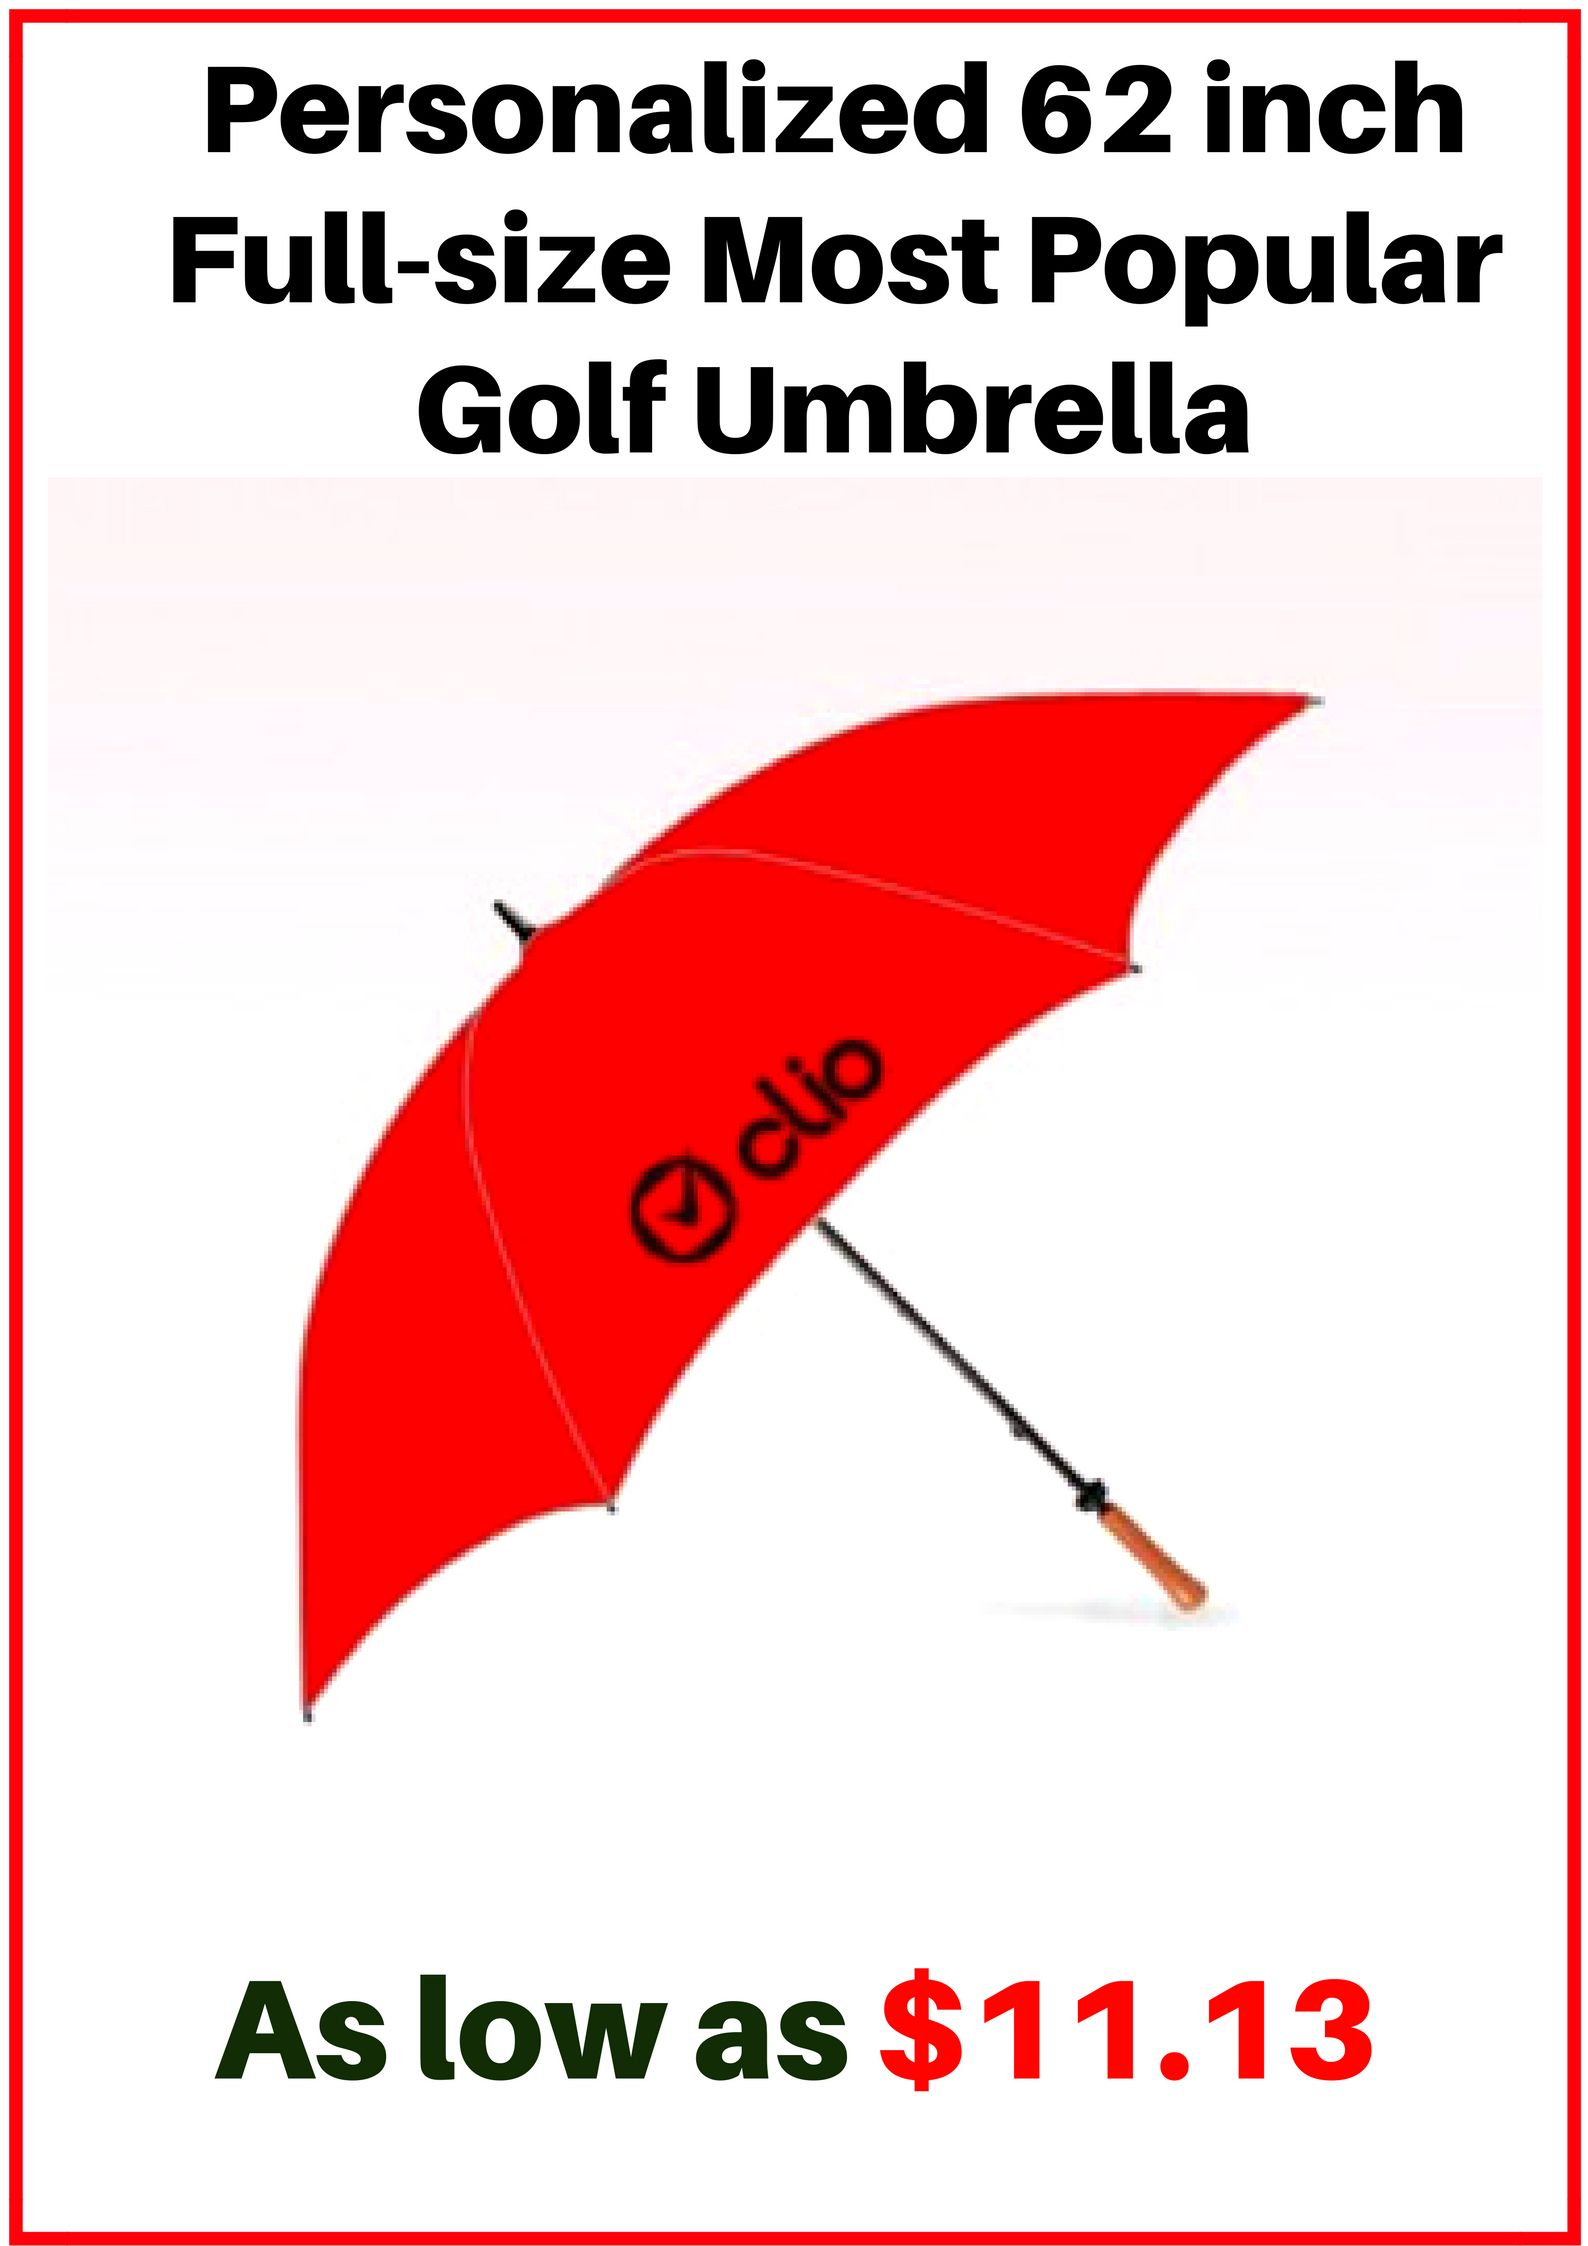 0db7380e1d470 Powerful promotional giveaways to get your brand noticed in the crowd !  #golf #logo #freesetup #umbrellas